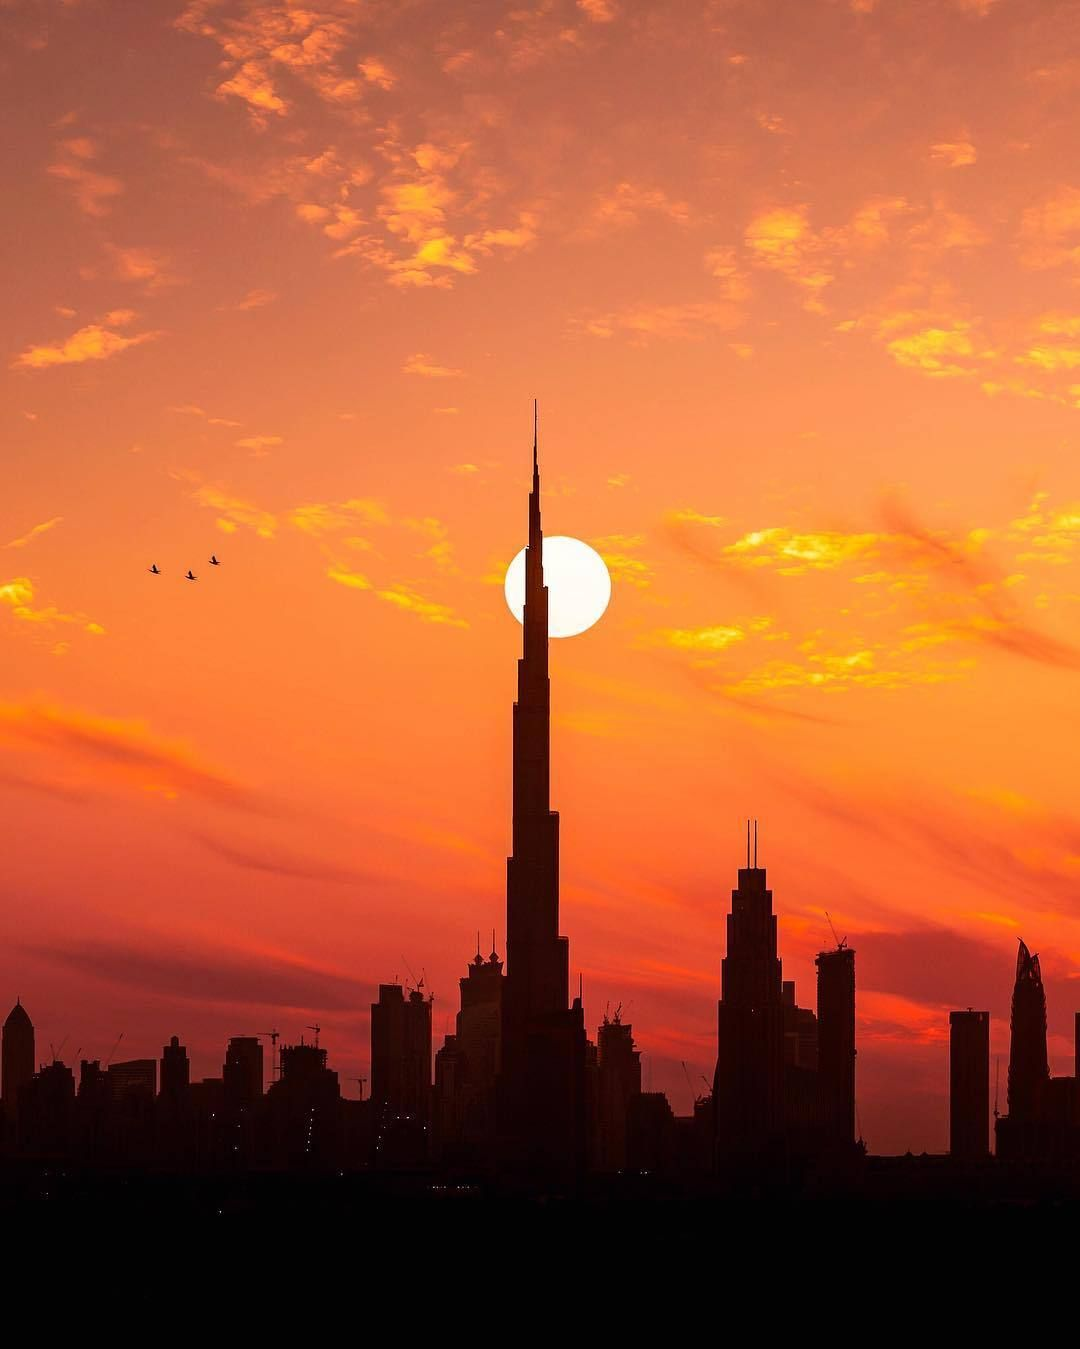 UAE Voice — Sunset at the Emirates,UAE | United Arab Emirates in